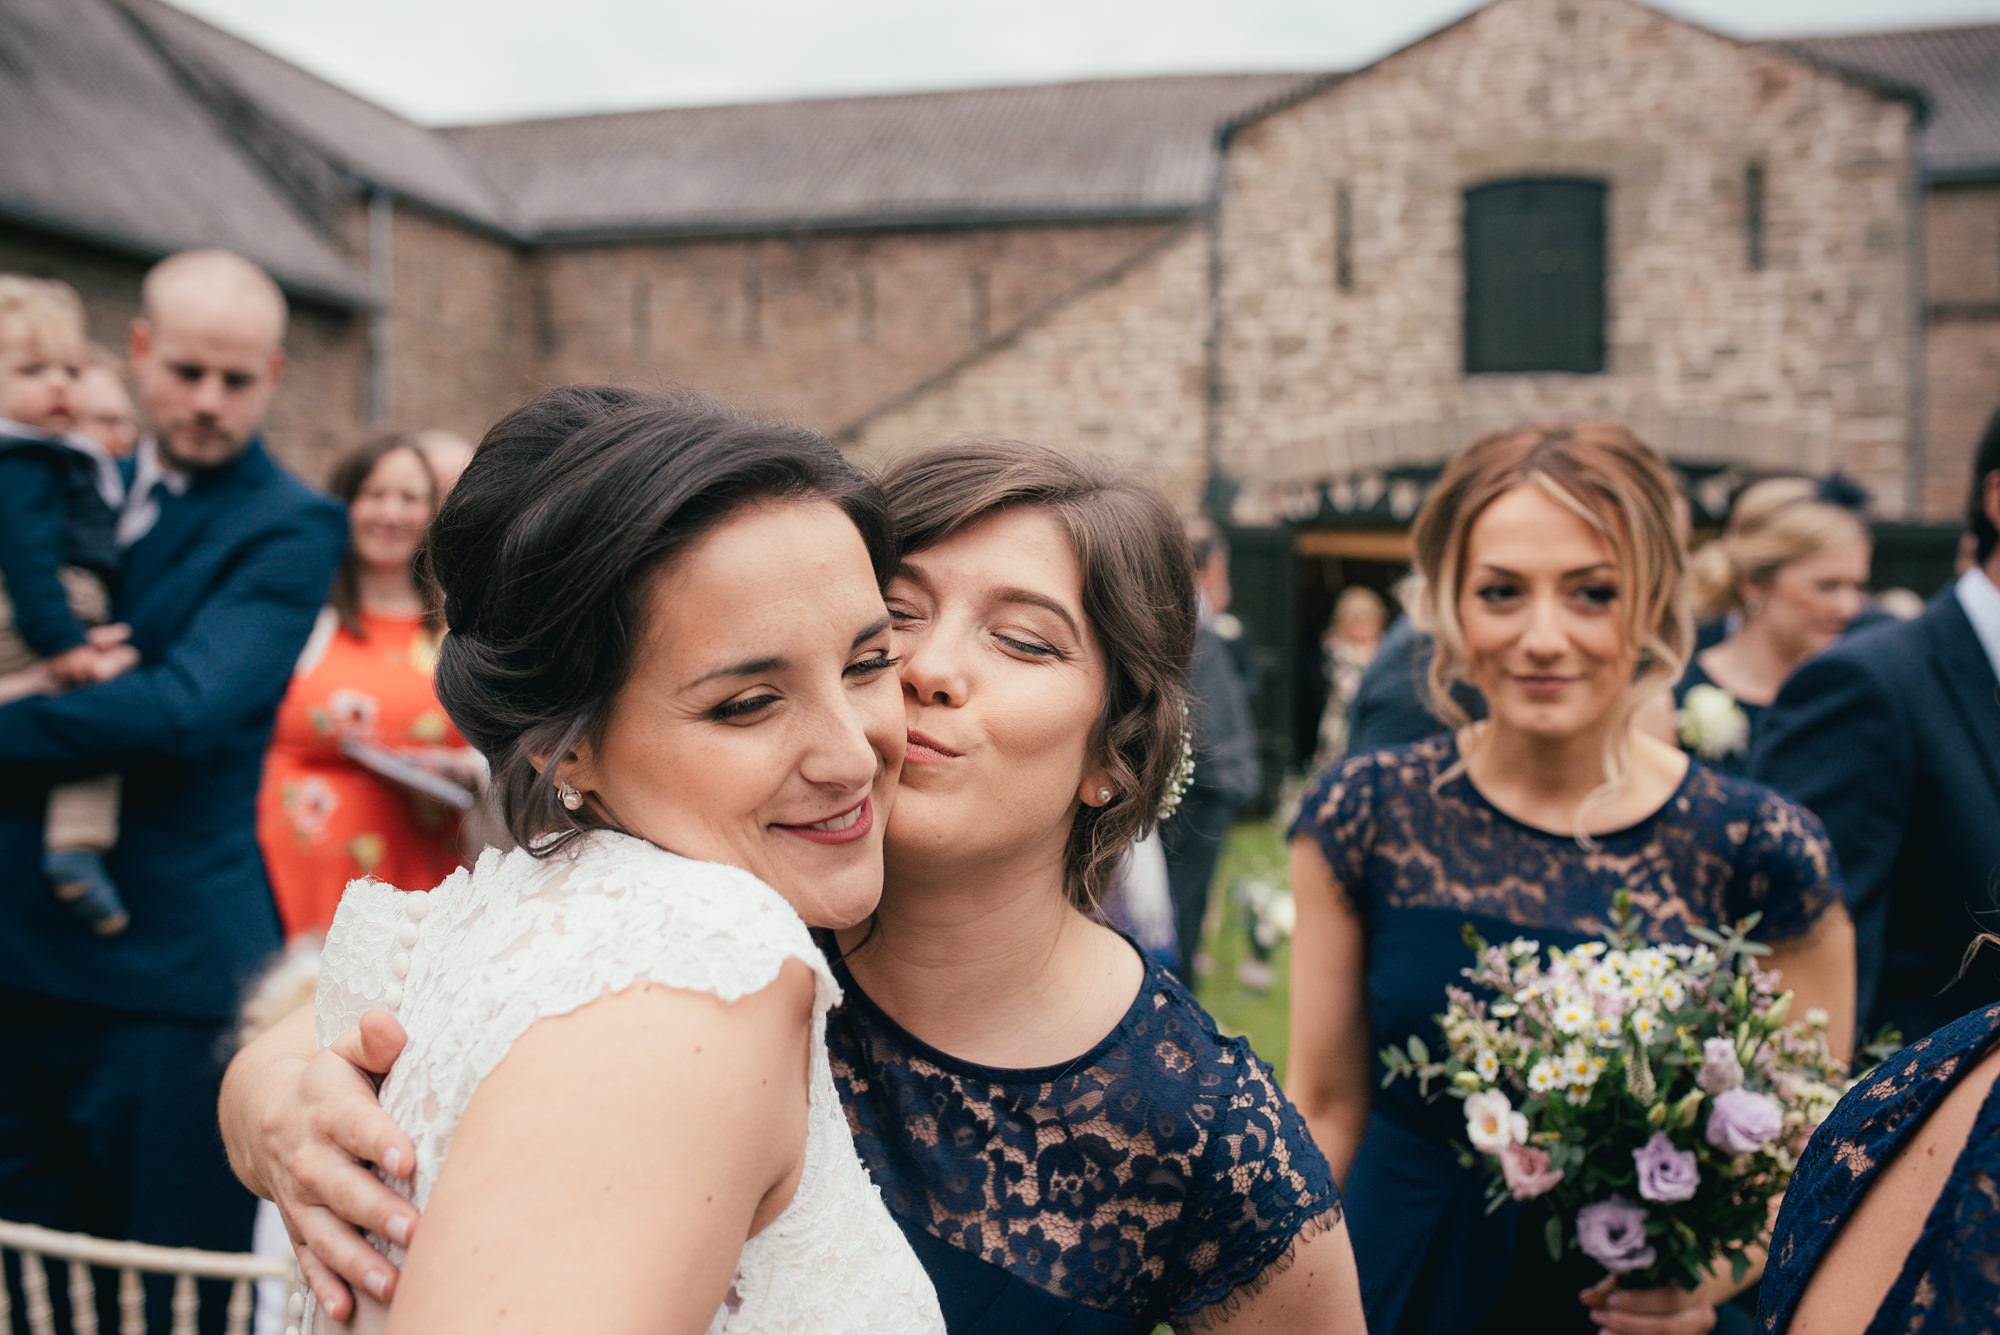 Lyde Court wedding Photographer41